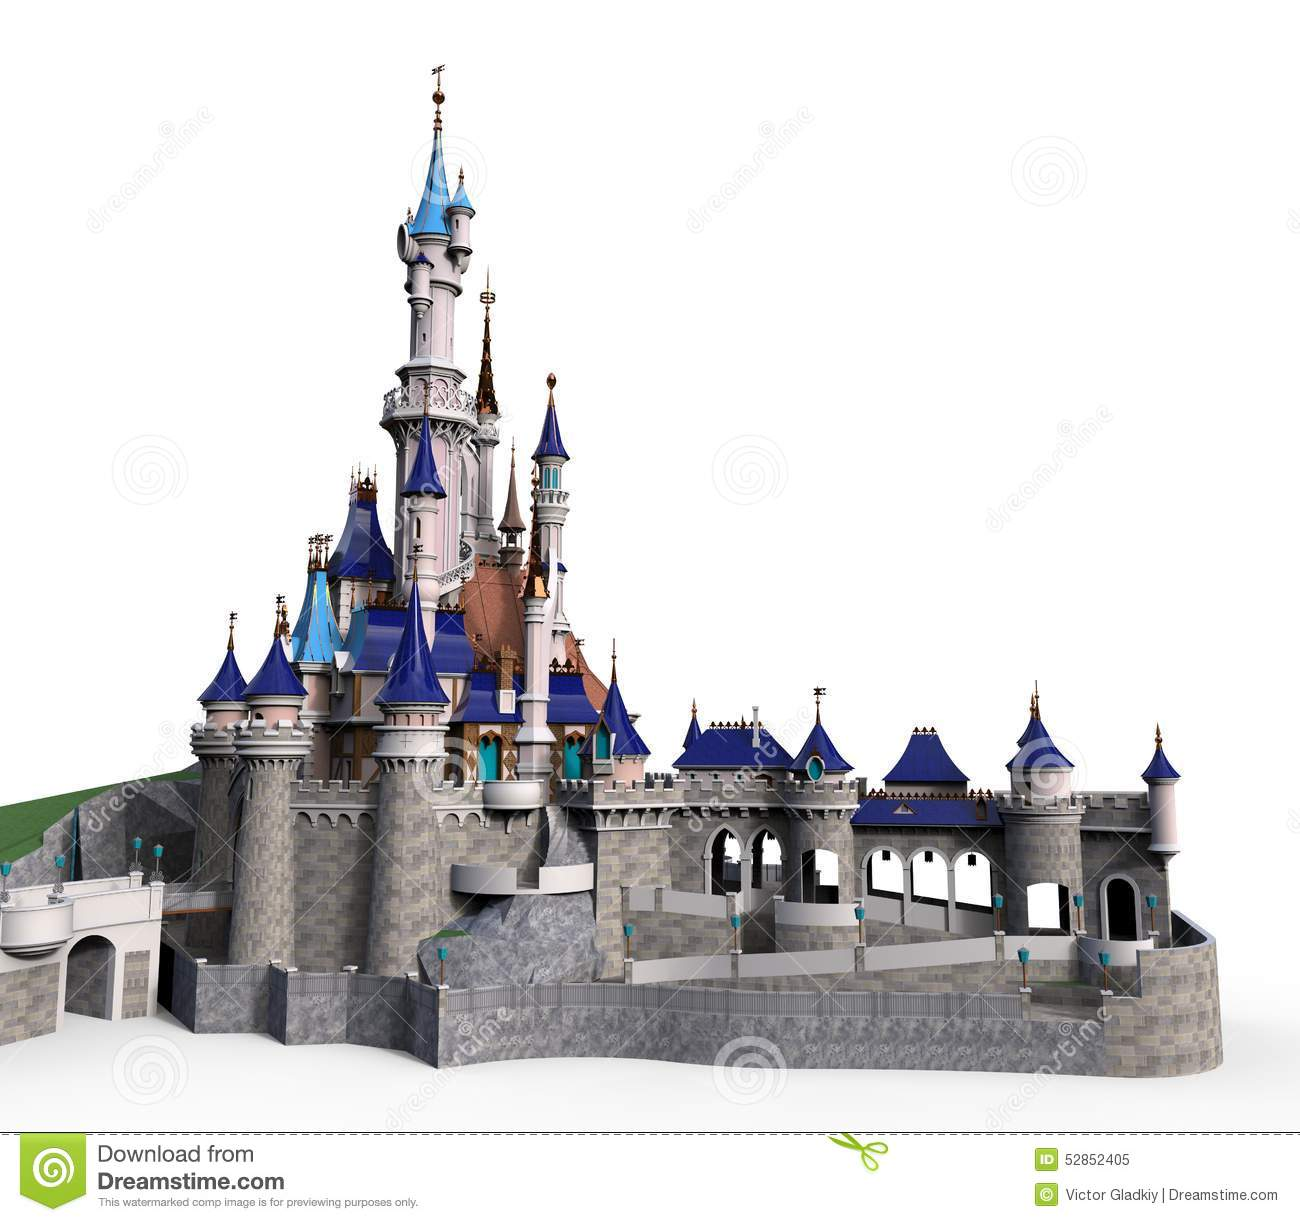 Clip-art castle isolated on the white background.